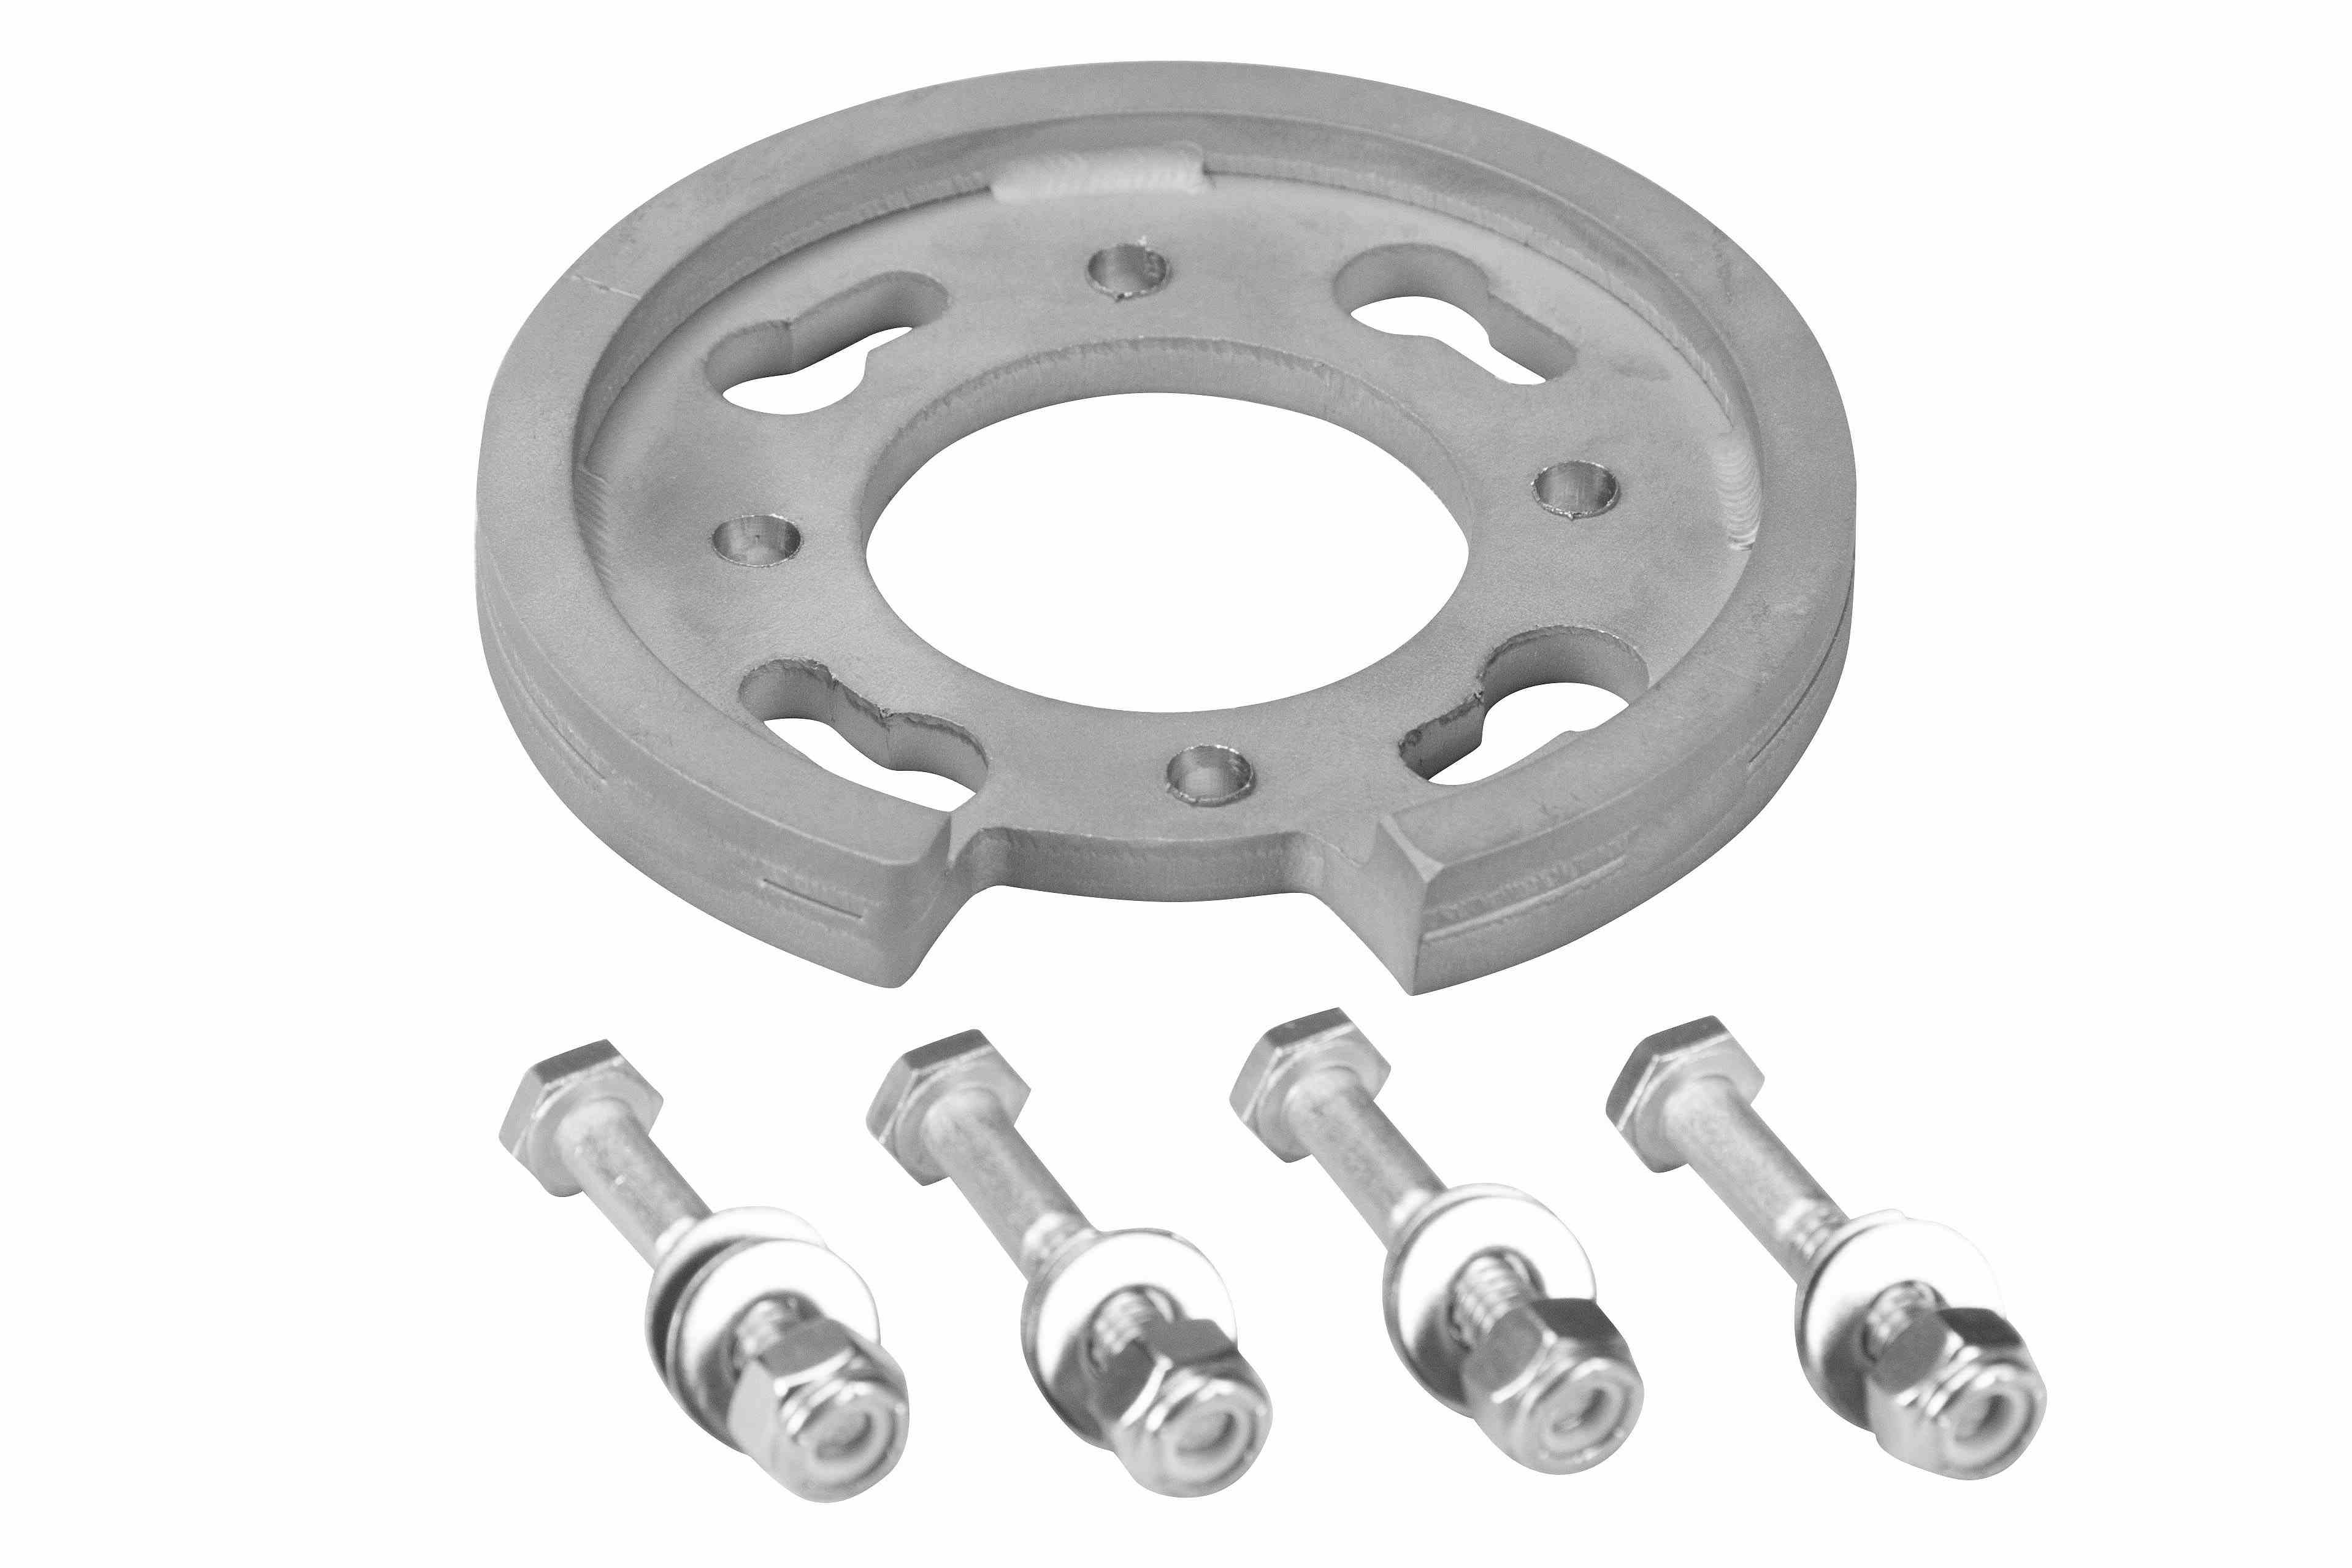 Replacement Mounting Hardware Kit for RCL200 Series Lights